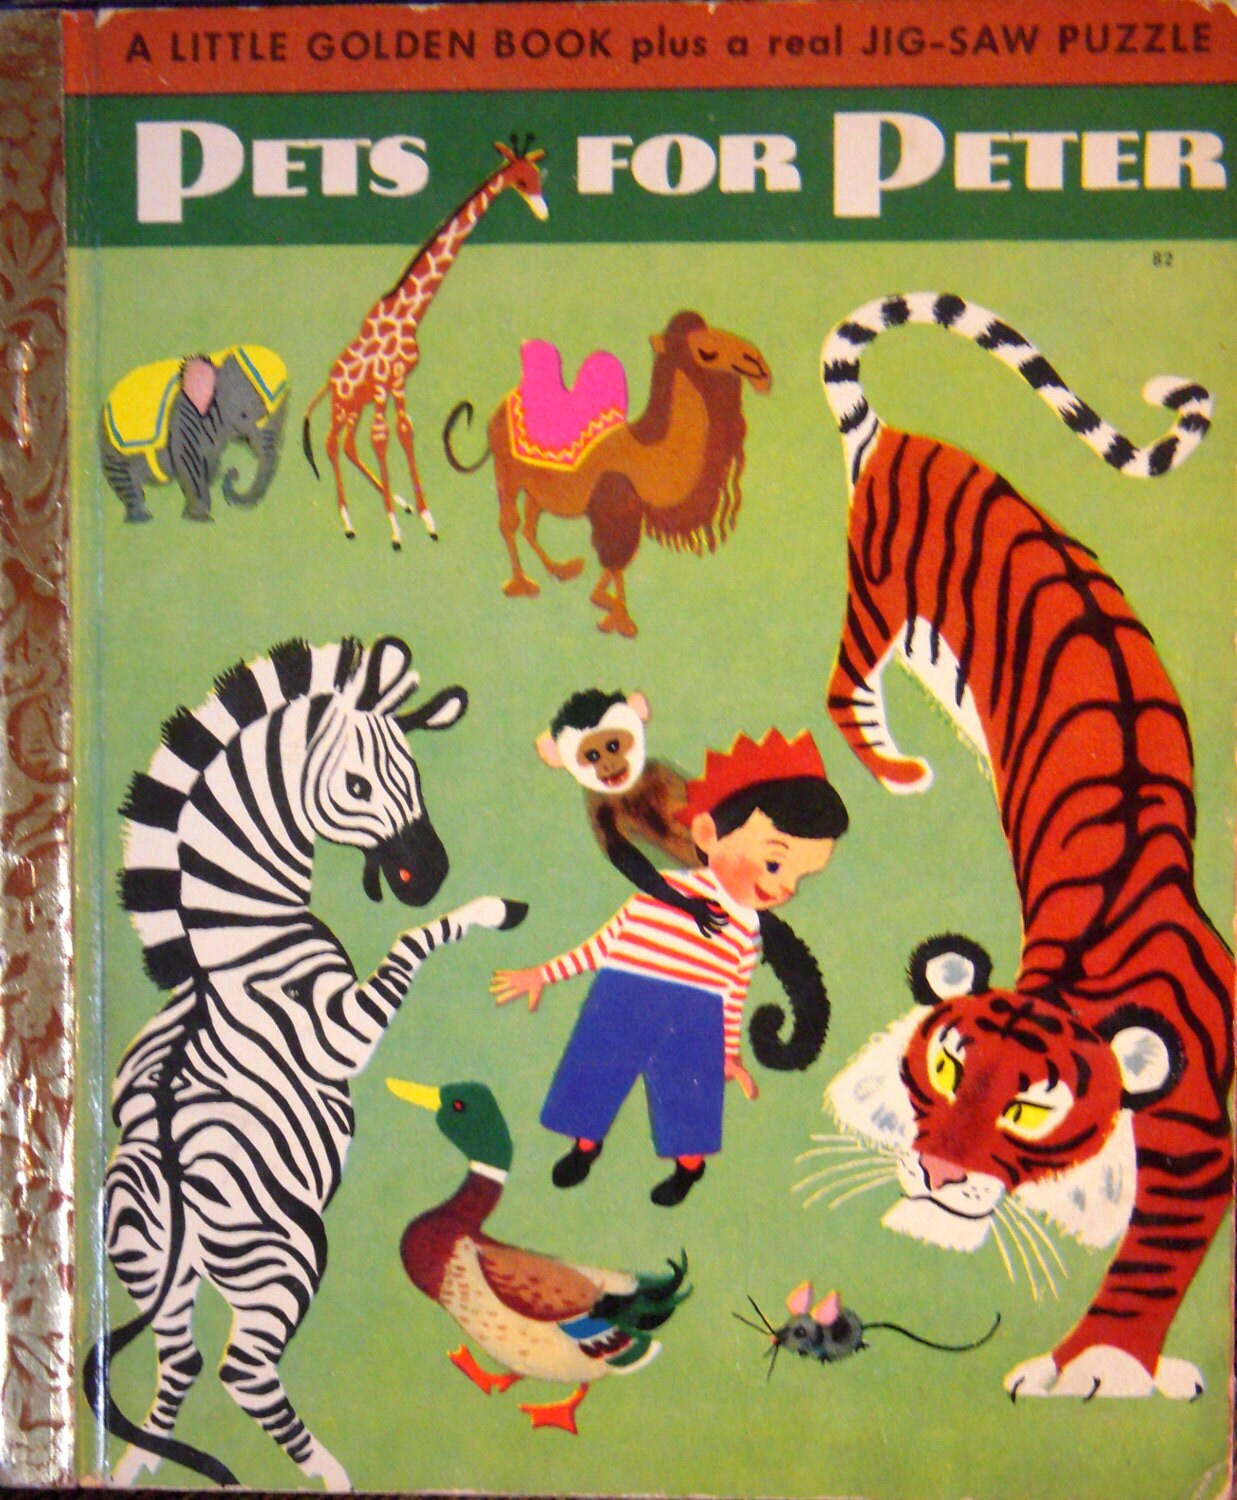 1950 Pets For Peter 82 Little Golden Book By BasketCaseBooks